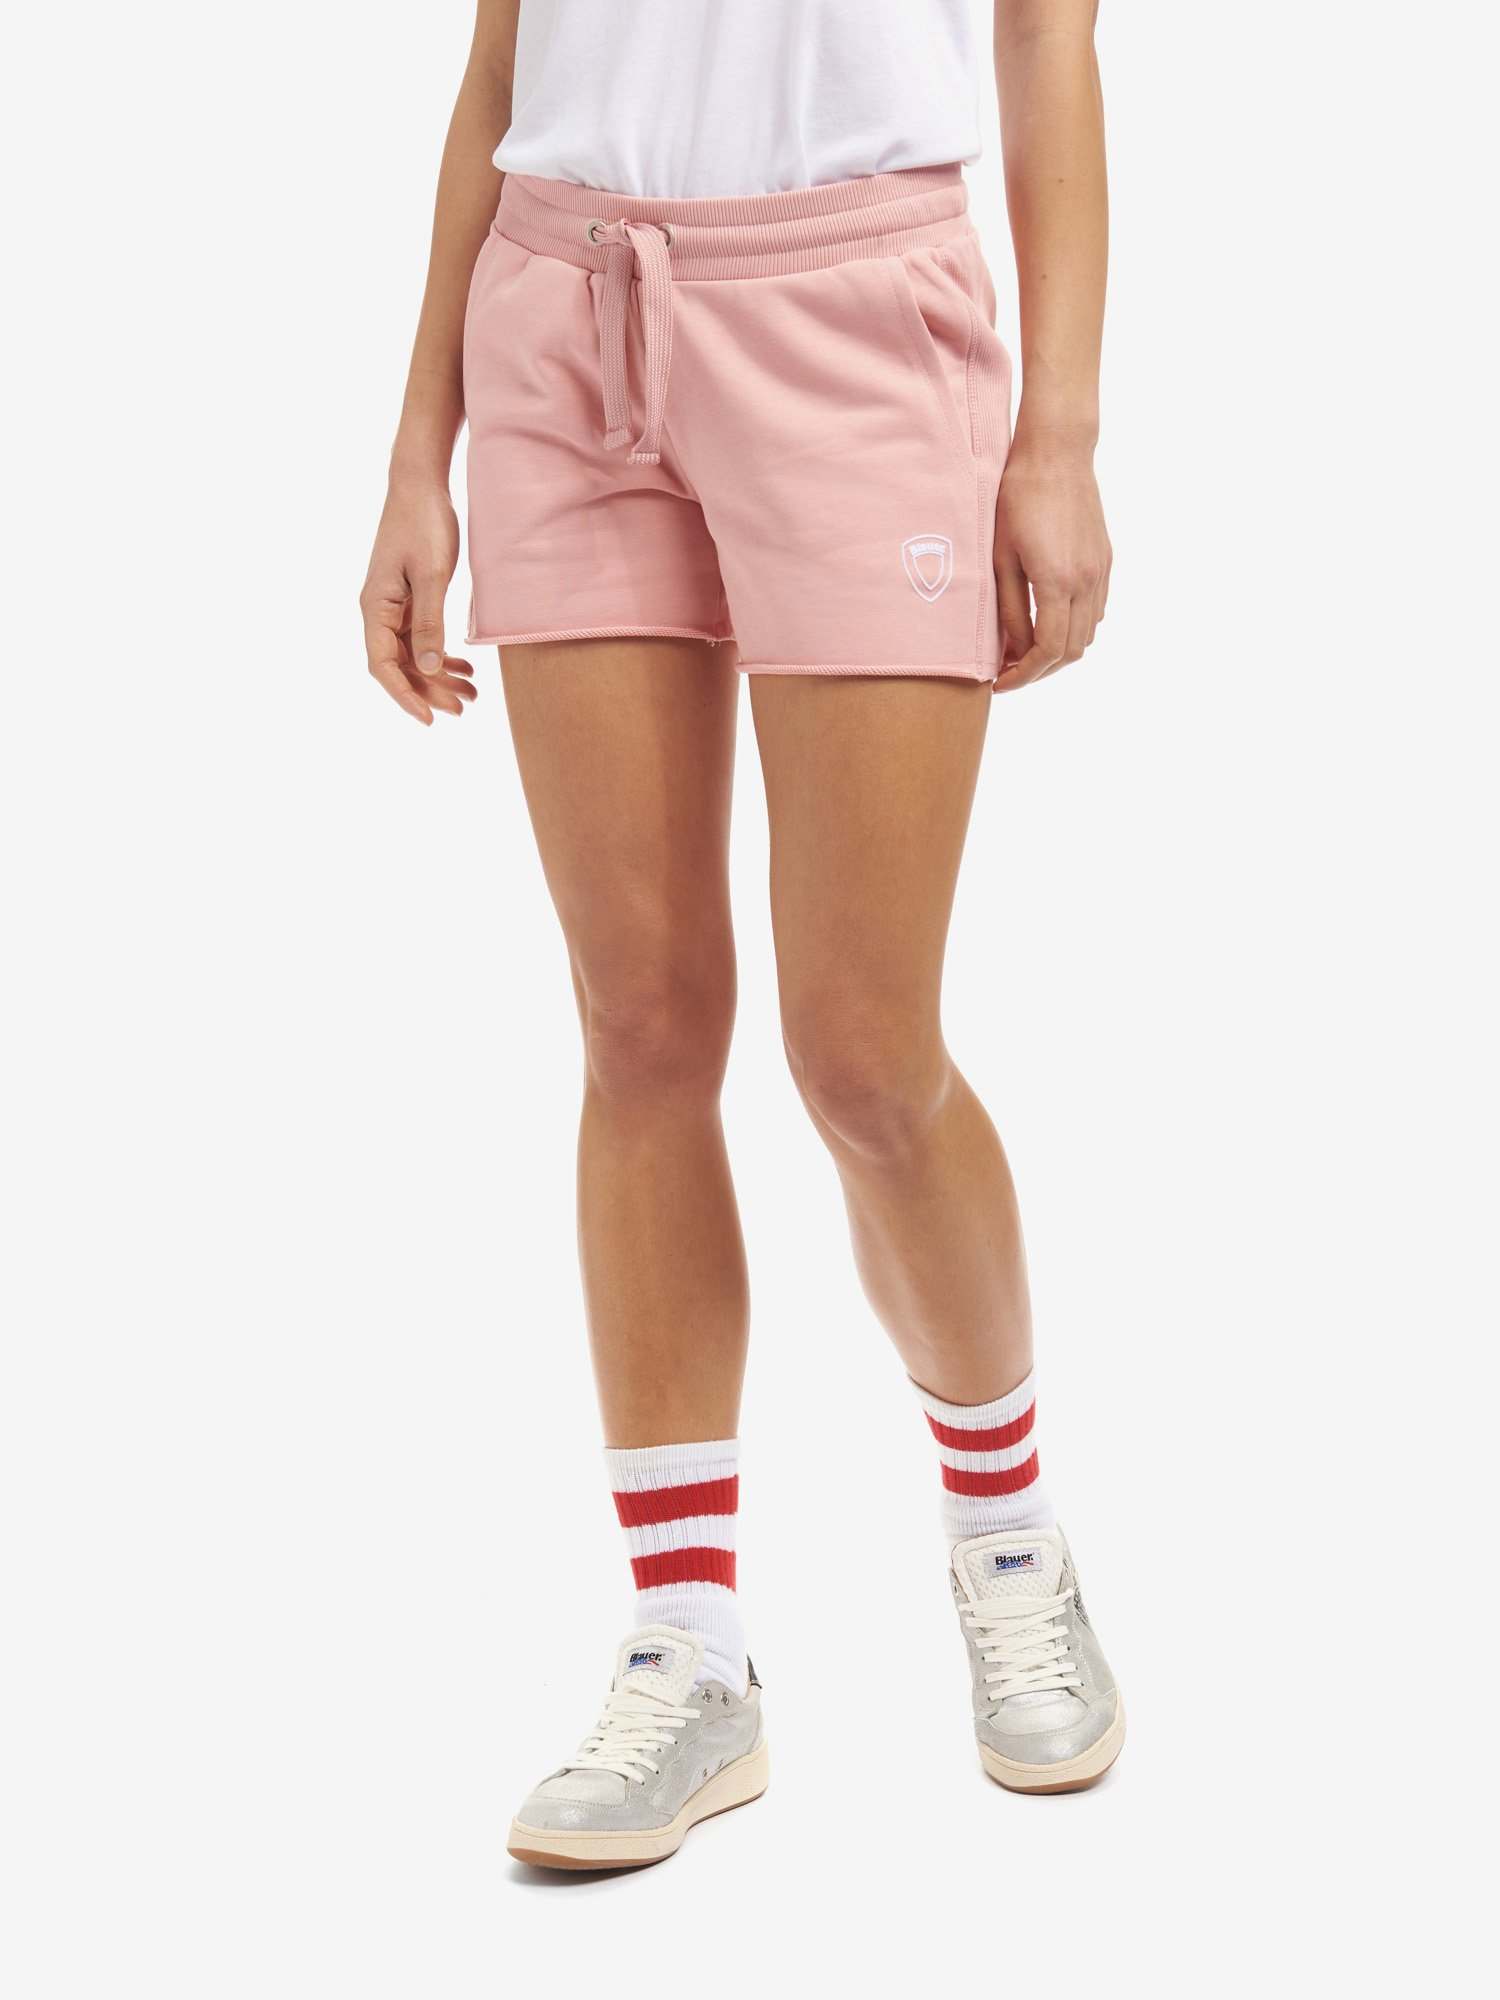 Blauer - SHORT SWEATPANTS - Soft Pink - Blauer